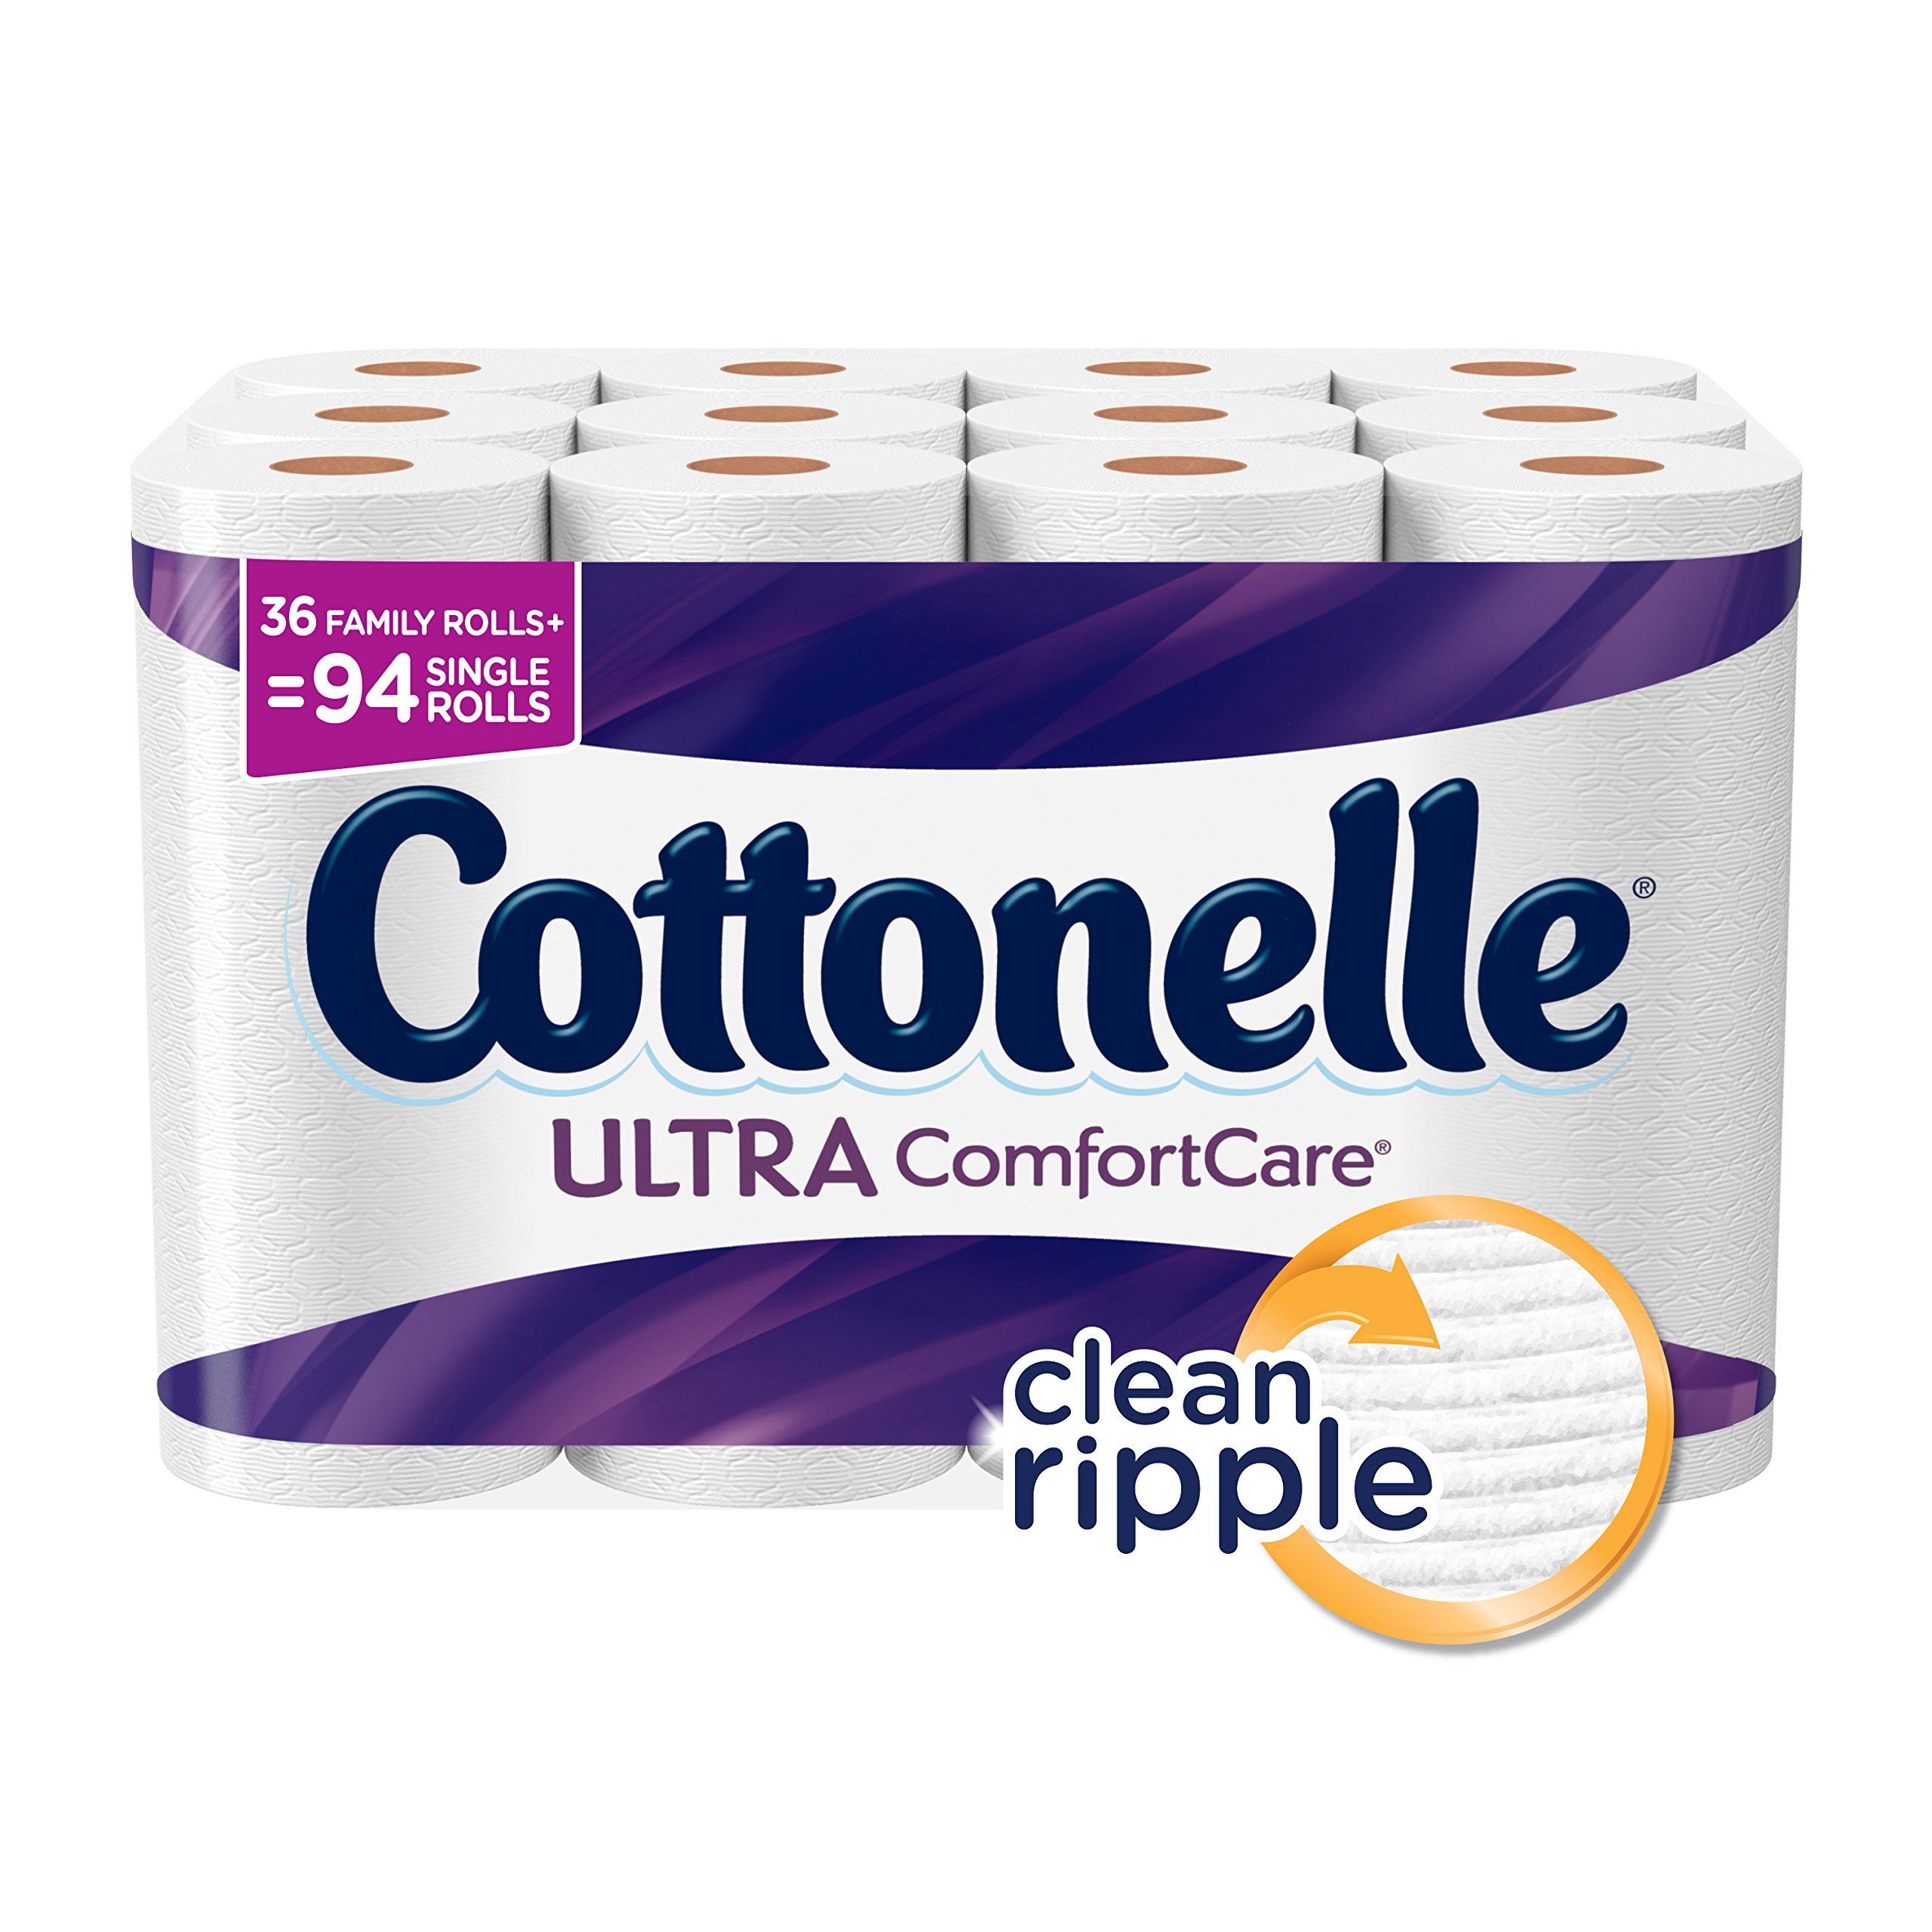 Cottonelle Ultra ComfortCare Family Roll Plus Toilet Paper, Bath Tissue, 36 Toilet Paper Rolls by Cottonelle